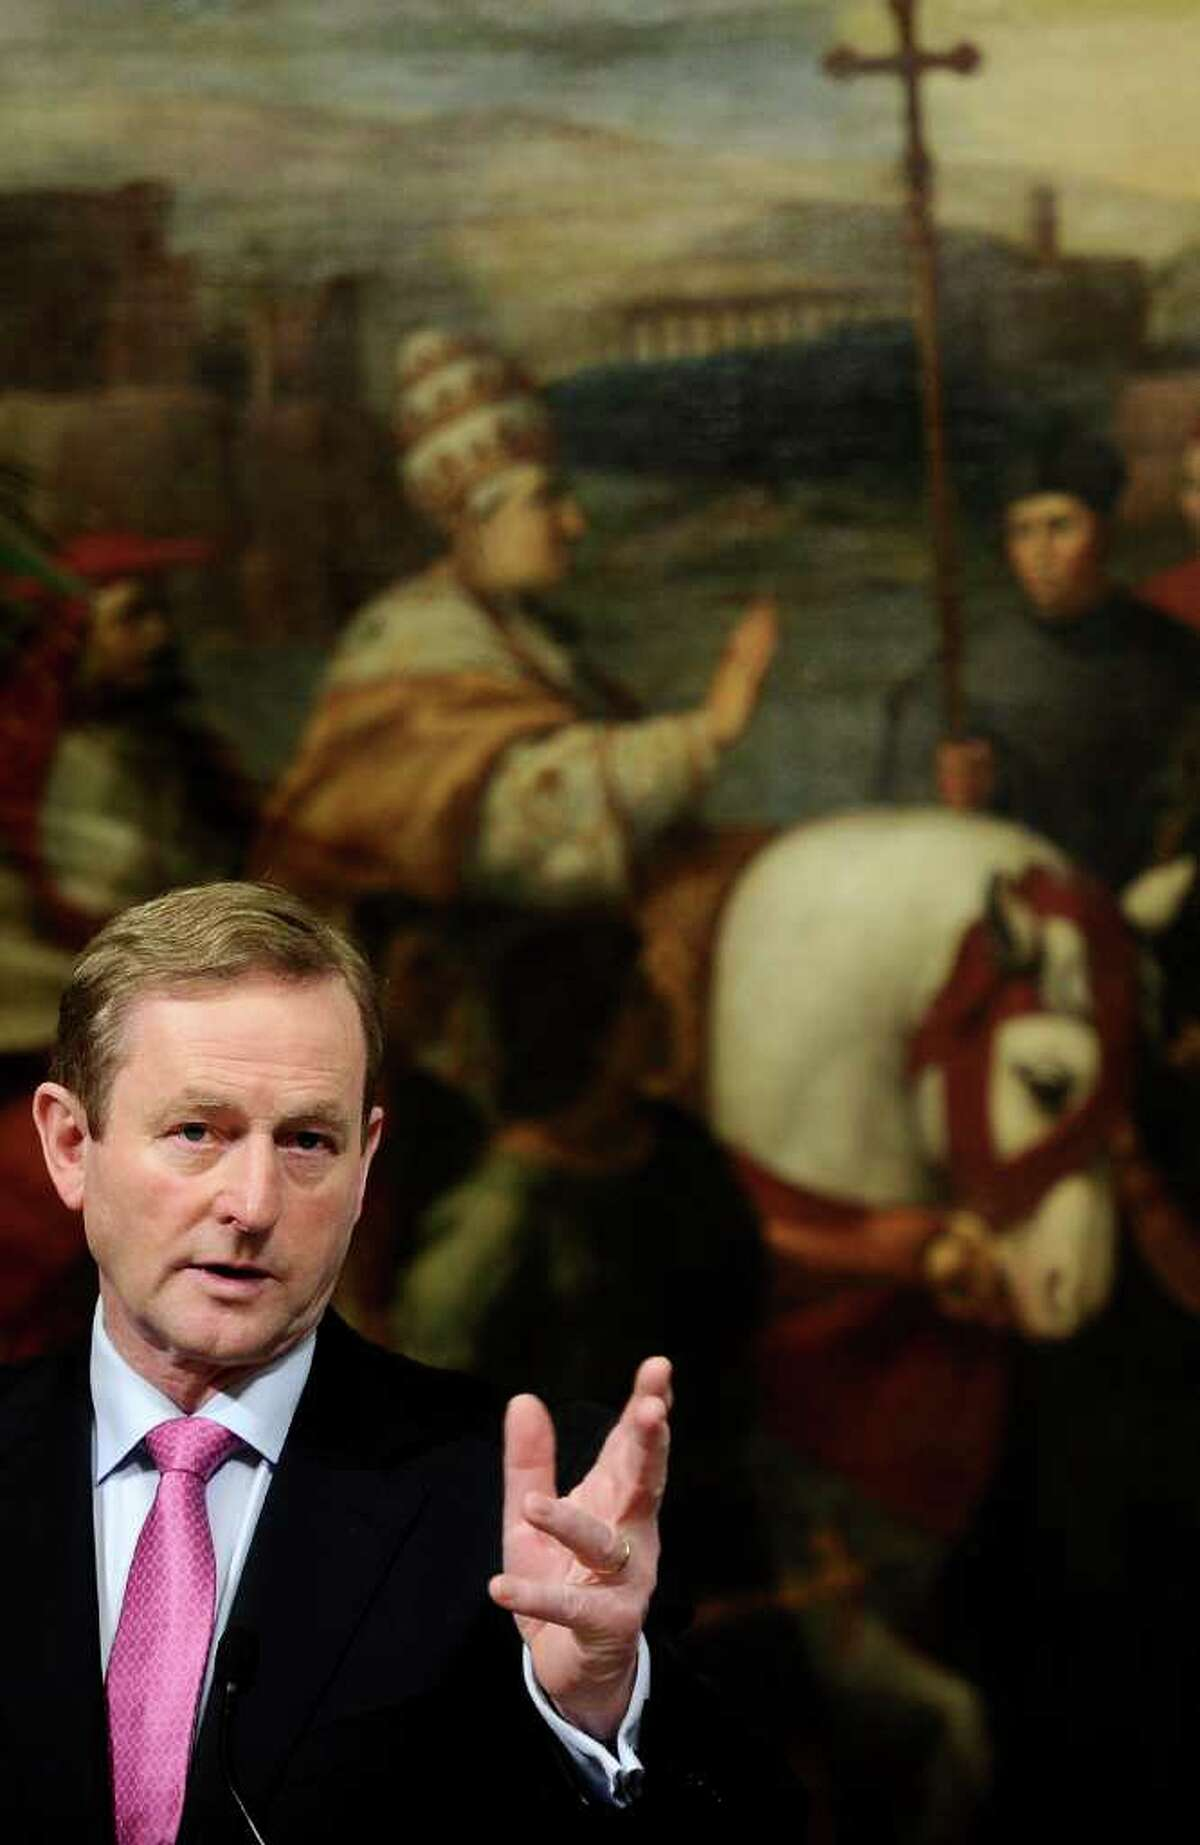 Ireland's Prime Minister Enda Kenny gestures during a joint press conference with his Italian counterpart after their meeting at Palazzo Chigi in Rome on February 23, 2012. AFP PHOTO / FILIPPO MONTEFORTE (Photo credit should read FILIPPO MONTEFORTE/AFP/Getty Images)